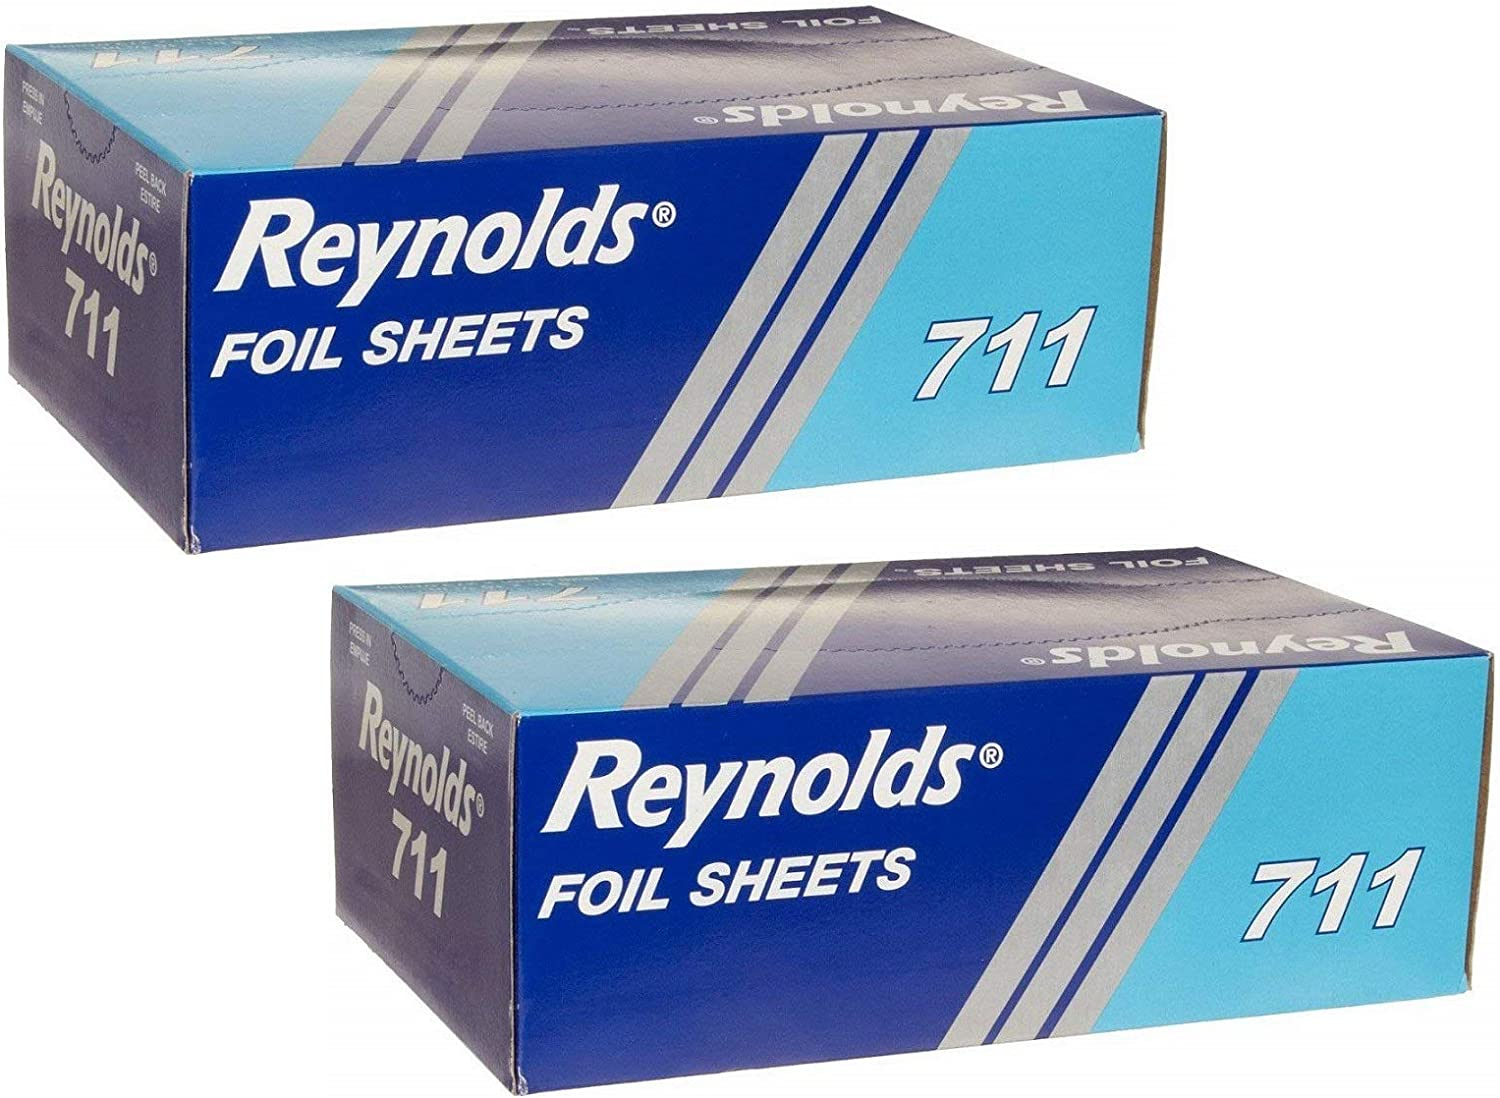 Reynolds 500 Foil Sheets Box, Pop-Up Interfolded Aluminum Foil 9 x 10.75 Inch Sheets in Silver. Pack of 2